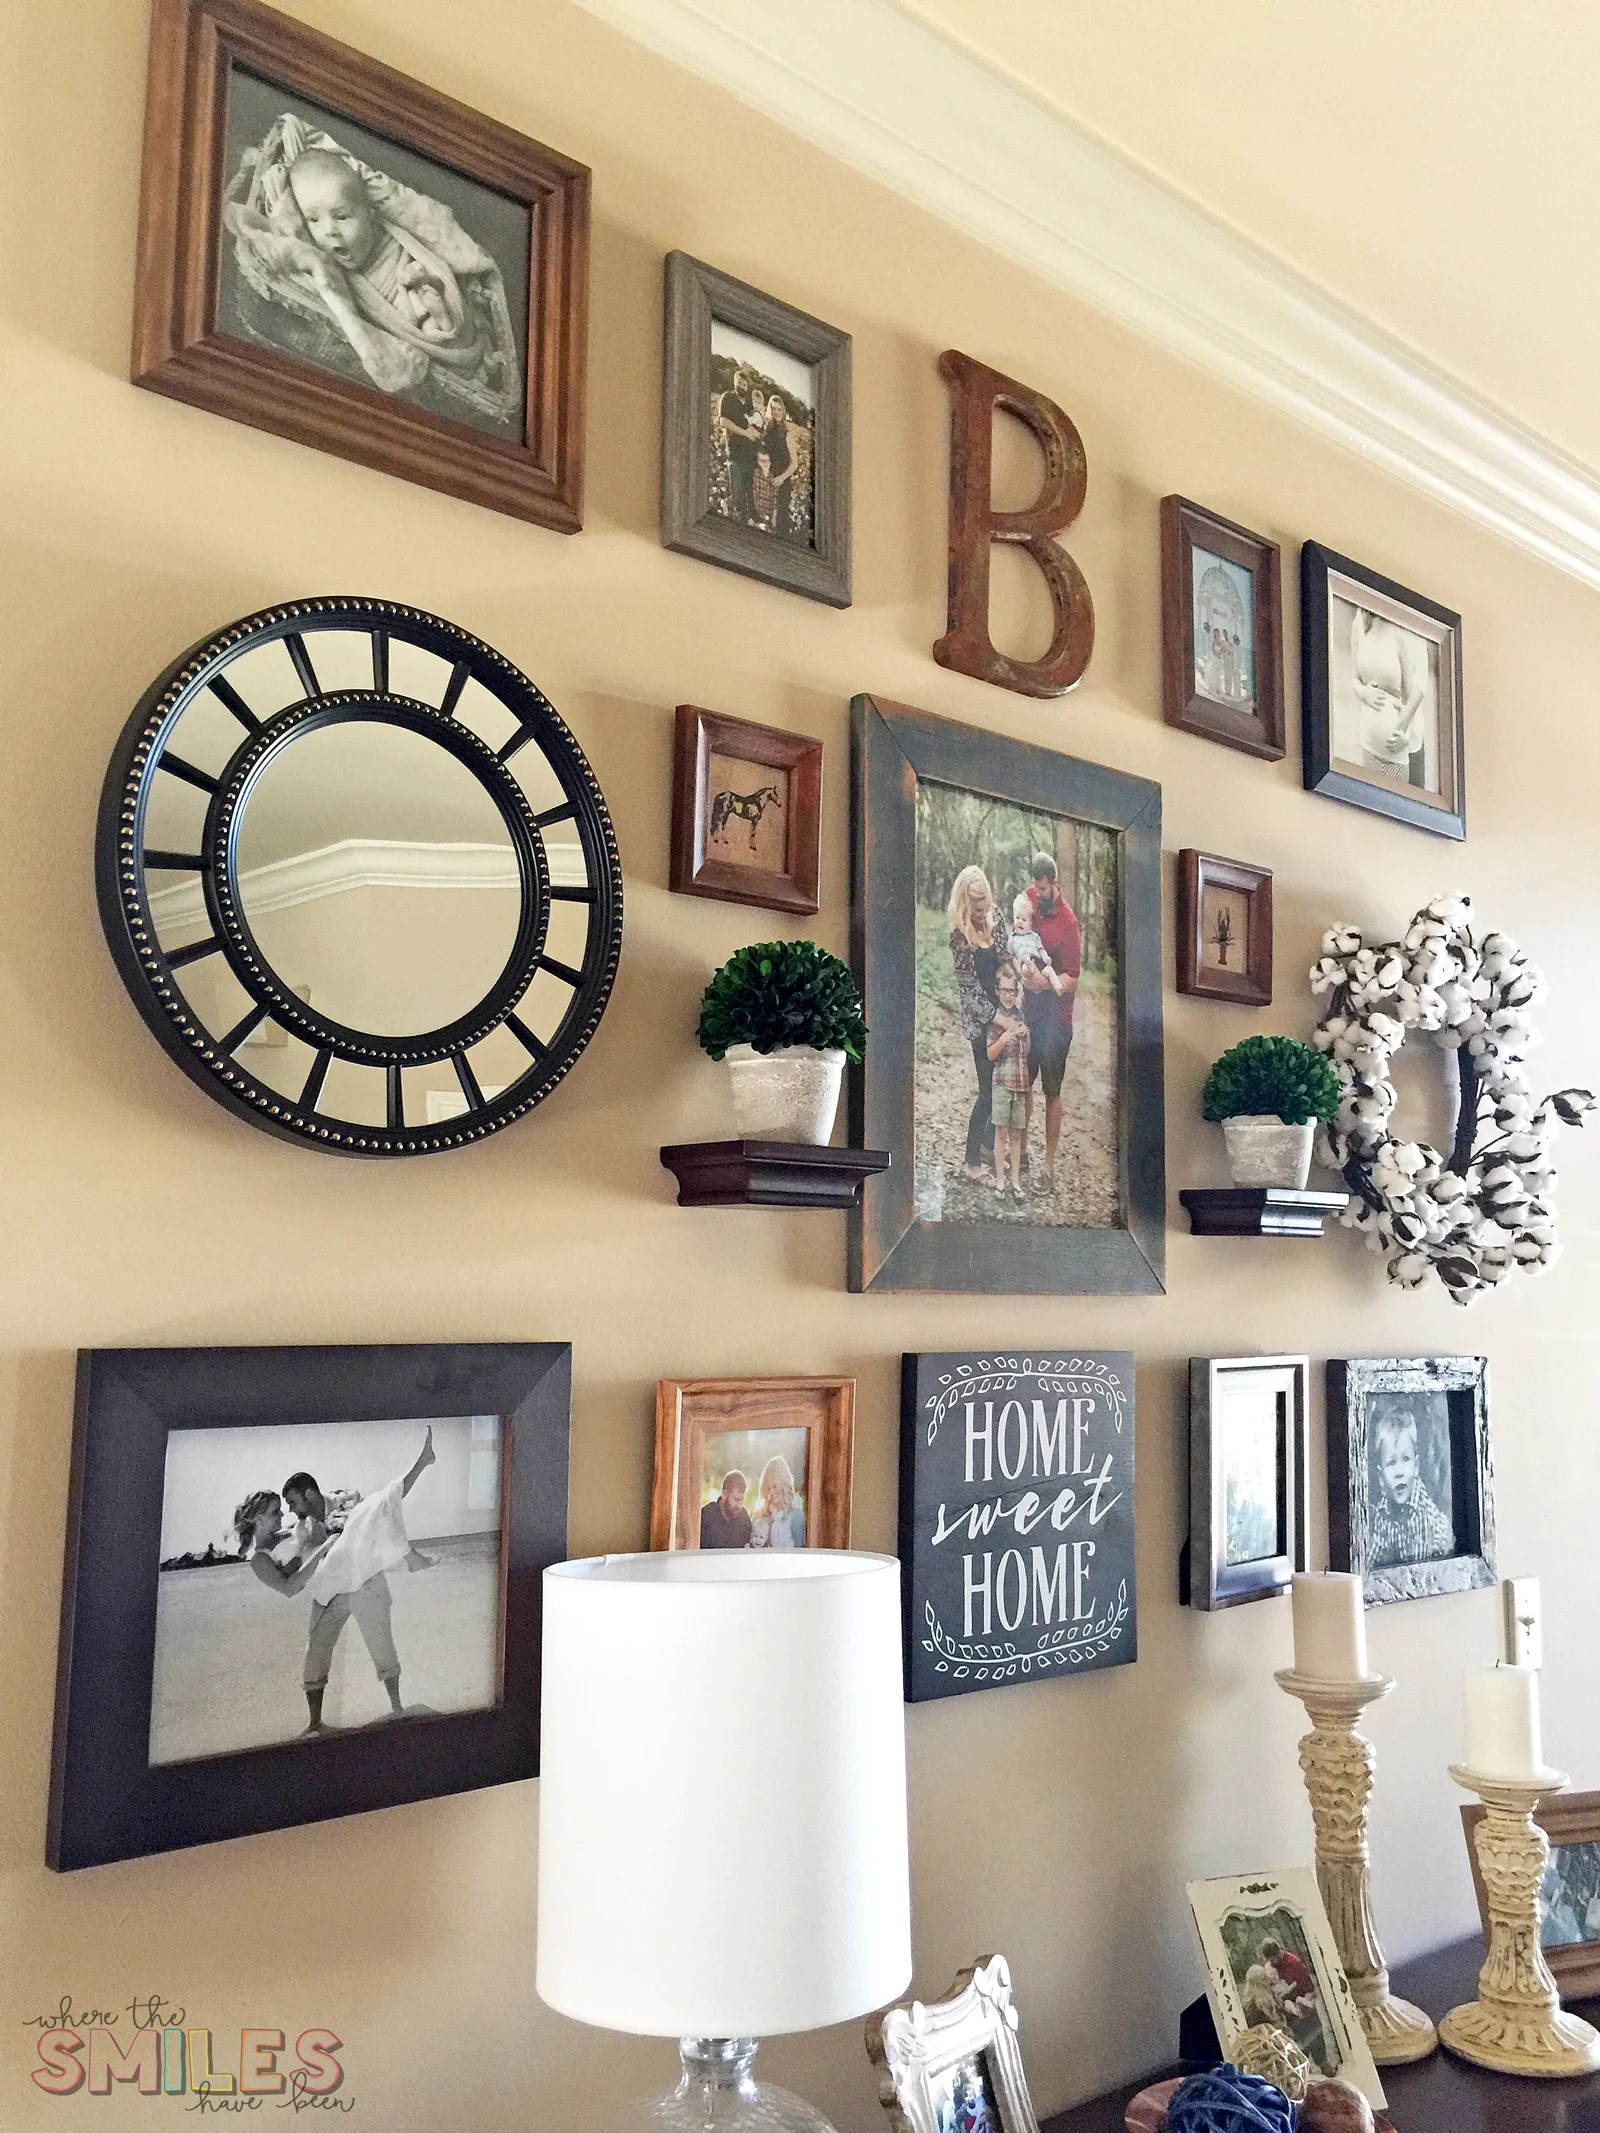 Modern Farmhouse Gallery Wall Reveal - Where The Smiles Have